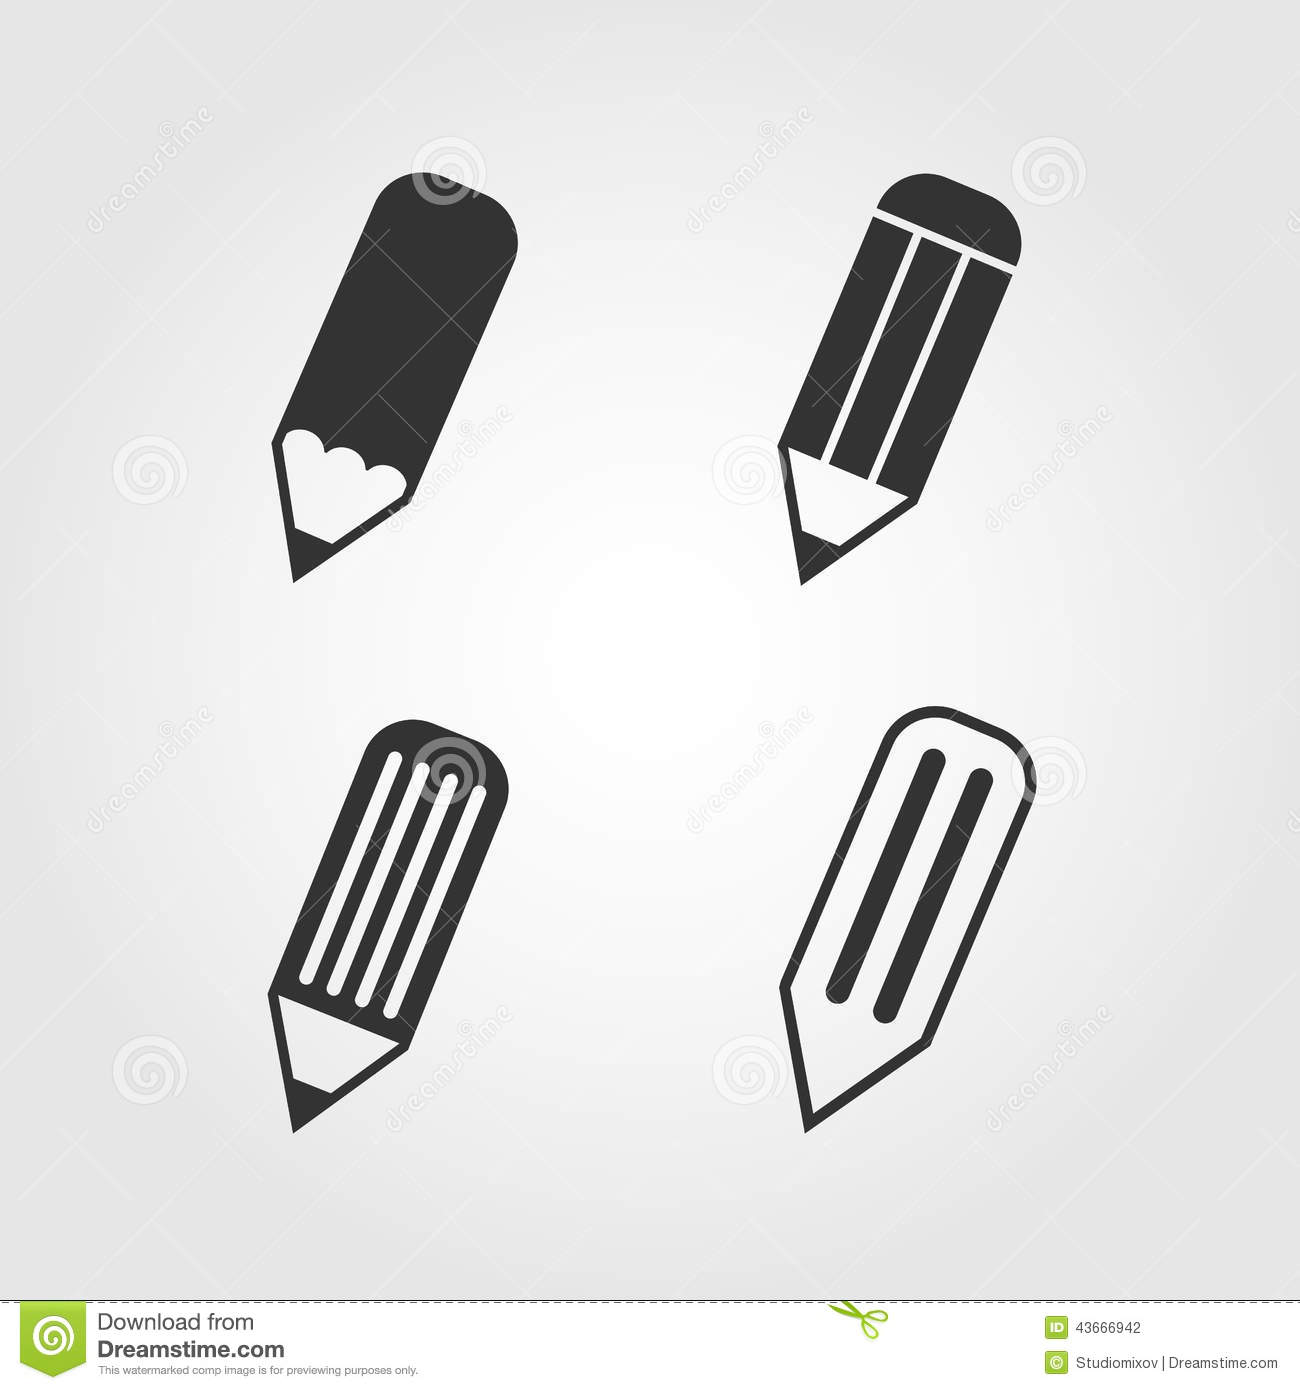 Pencil Icons Set, Flat Design Stock Vector - Image: 43666942